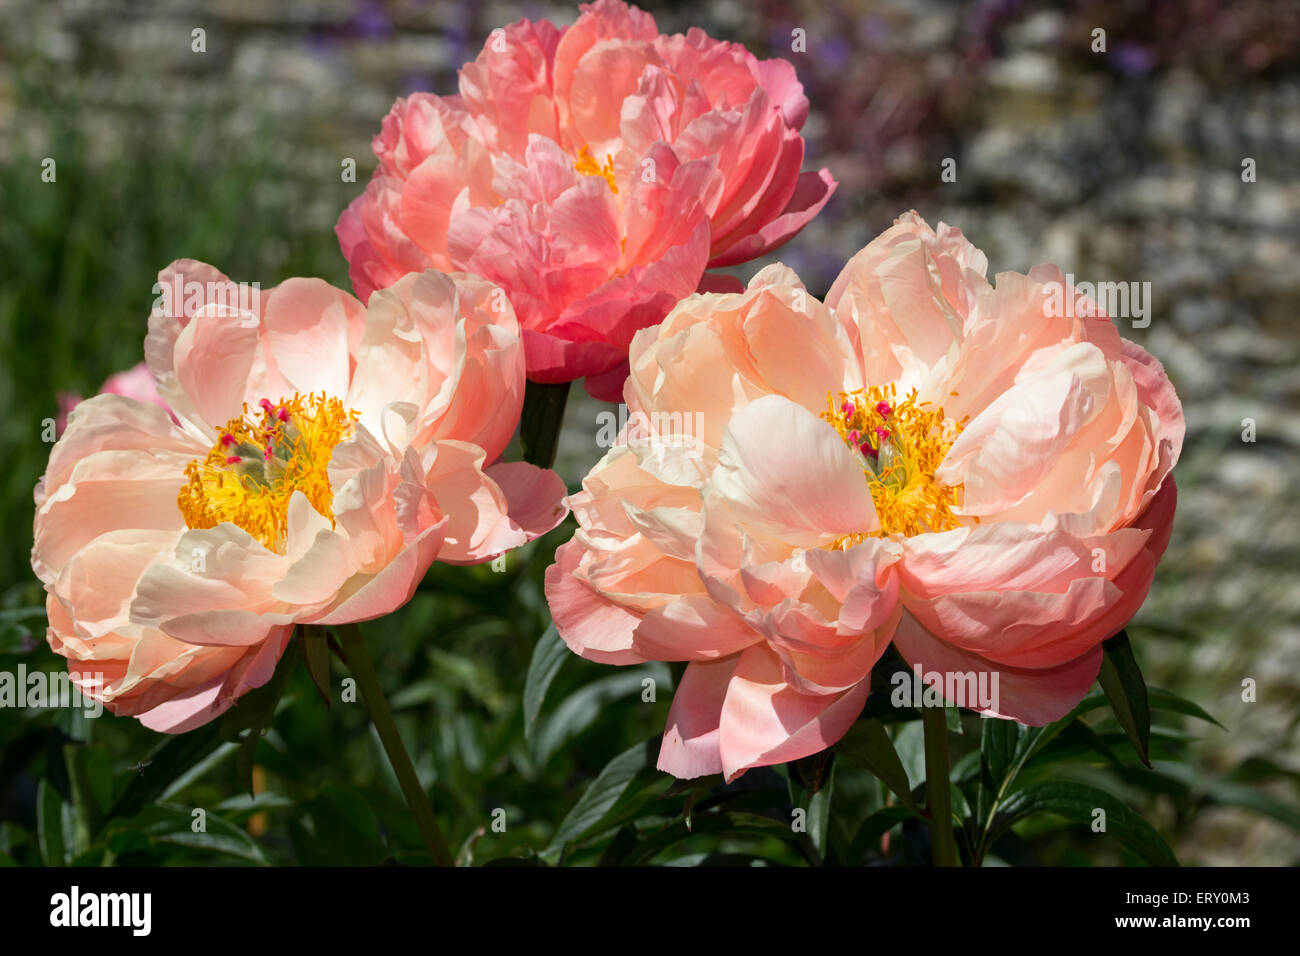 Open flowers of the hybrid peony, Paeonia 'Coral Charm' - Stock Image